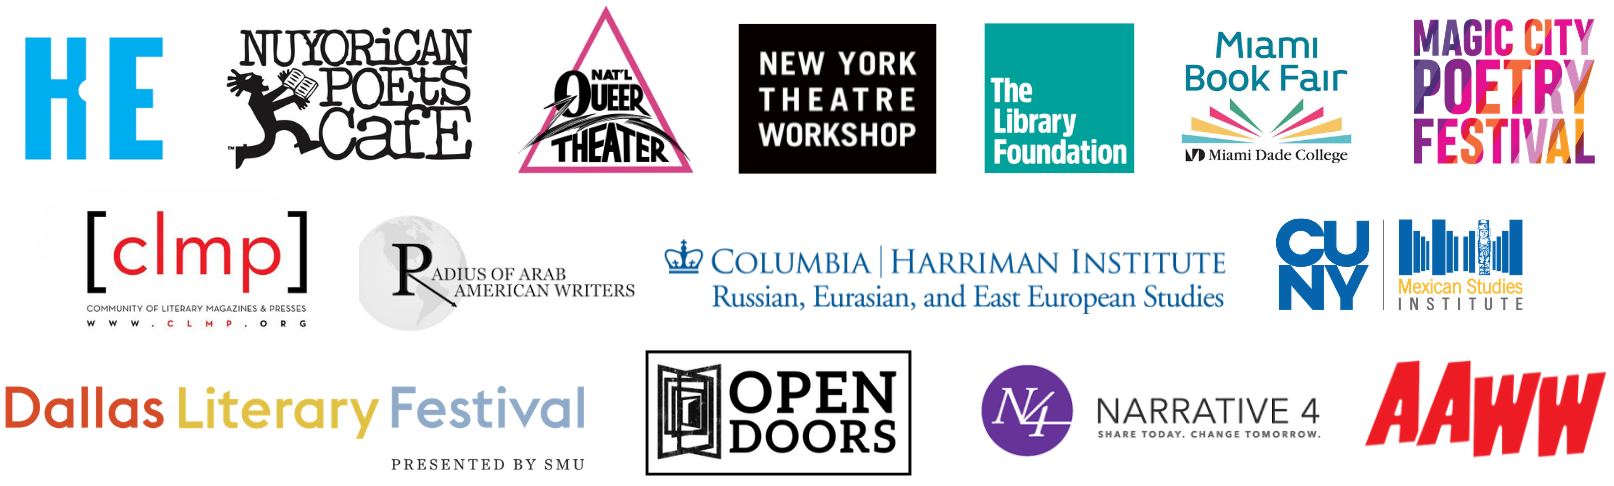 Logos of community and regional partners: Asian American Writers Workshop, Austin Library Foundation, Community of Literary Magazines & Presses (CLMP), Dallas Literary Festival, Harriman Institute at Columbia University, Kenning Editions, Magic City Poetry Festival, Miami Book Fair, National Queer Theater, New York Immigration Coalition, New York Theatre Workshop, Nuyorican Poets Cafe, Radius of Arab American Writers (RAWI), and Word Alliance